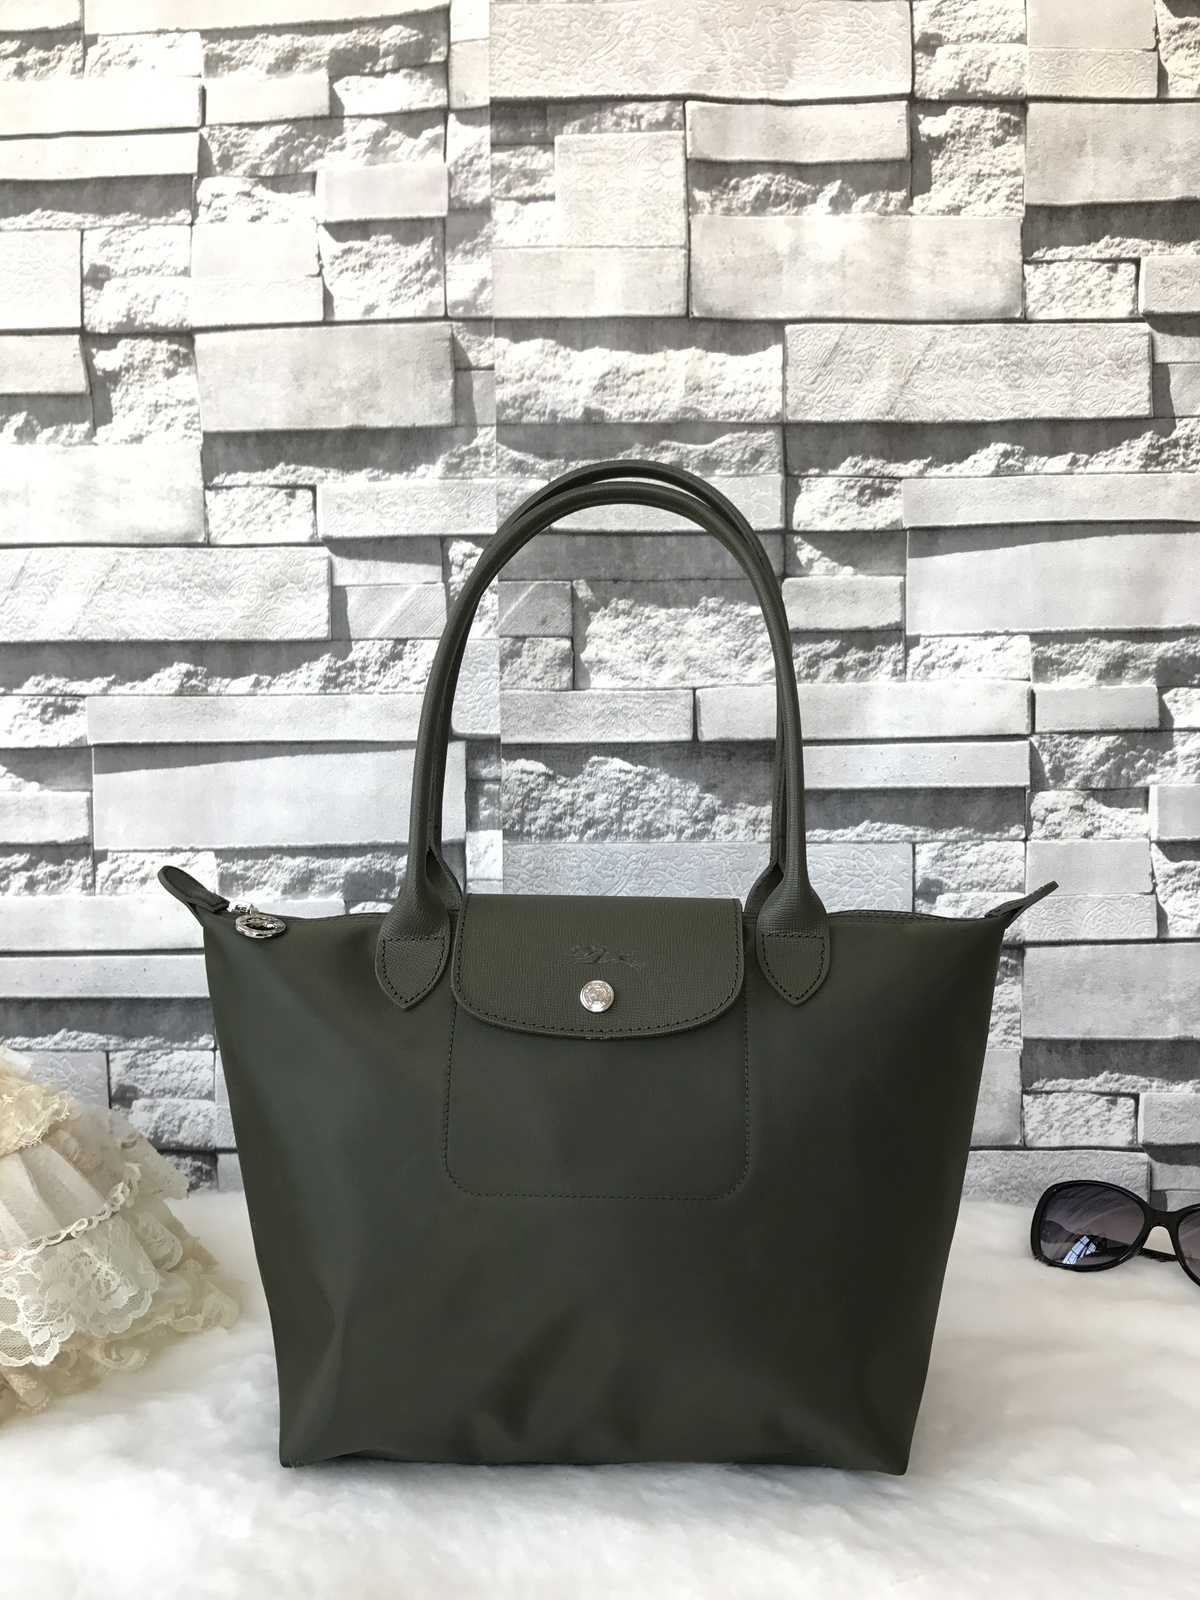 Longchamp Le Pliage Neo Small Tote Bag Khaki and 27 similar items. Img 0563 d24ebb05dd10c